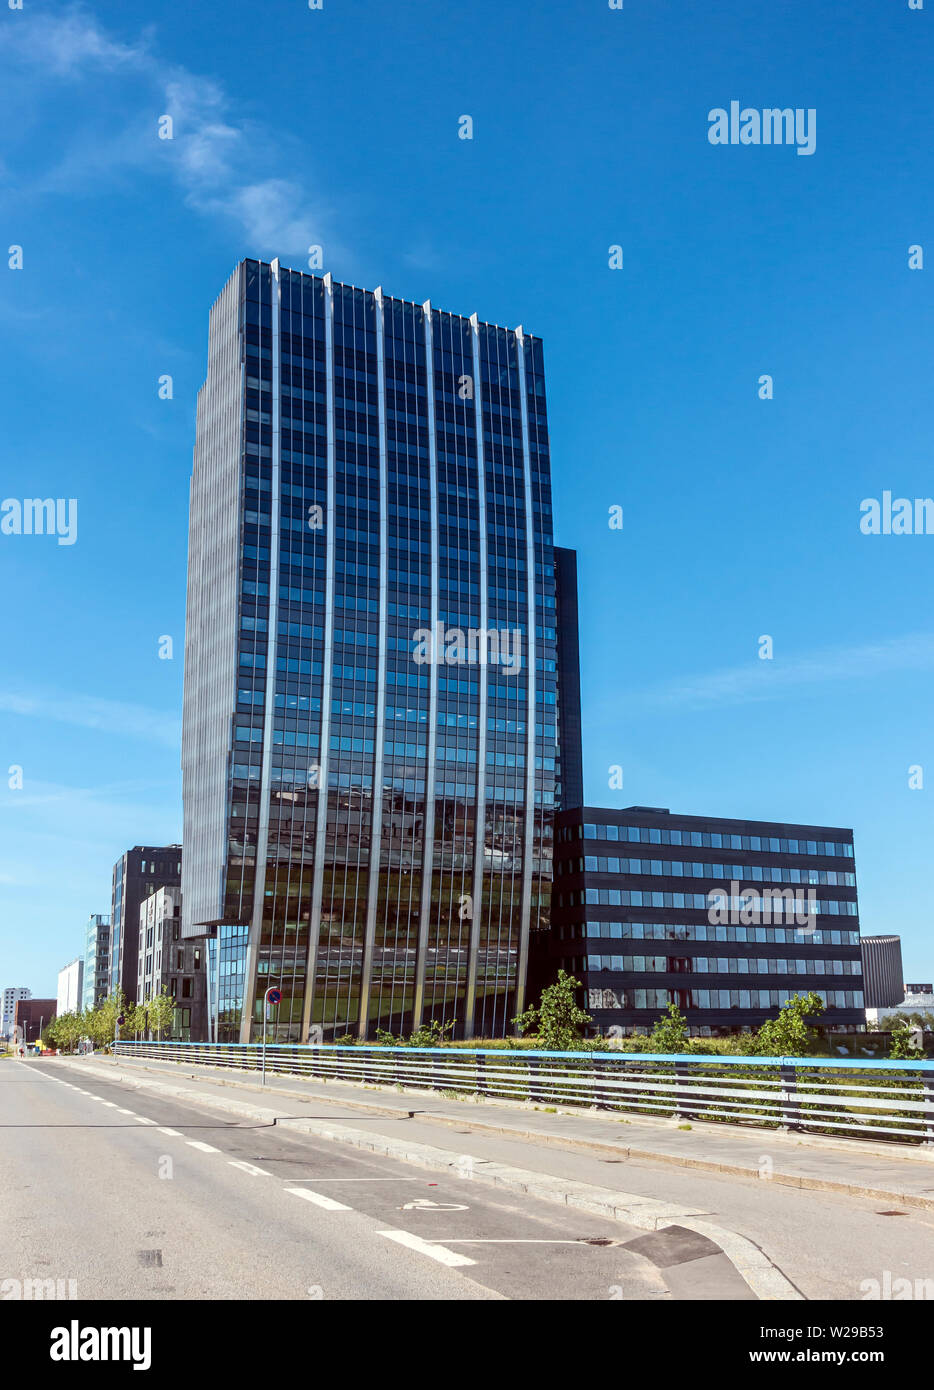 Tall building south of Vestamager metro railway station in Ørestad Amager Copenhagen Denmark Europe Stock Photo